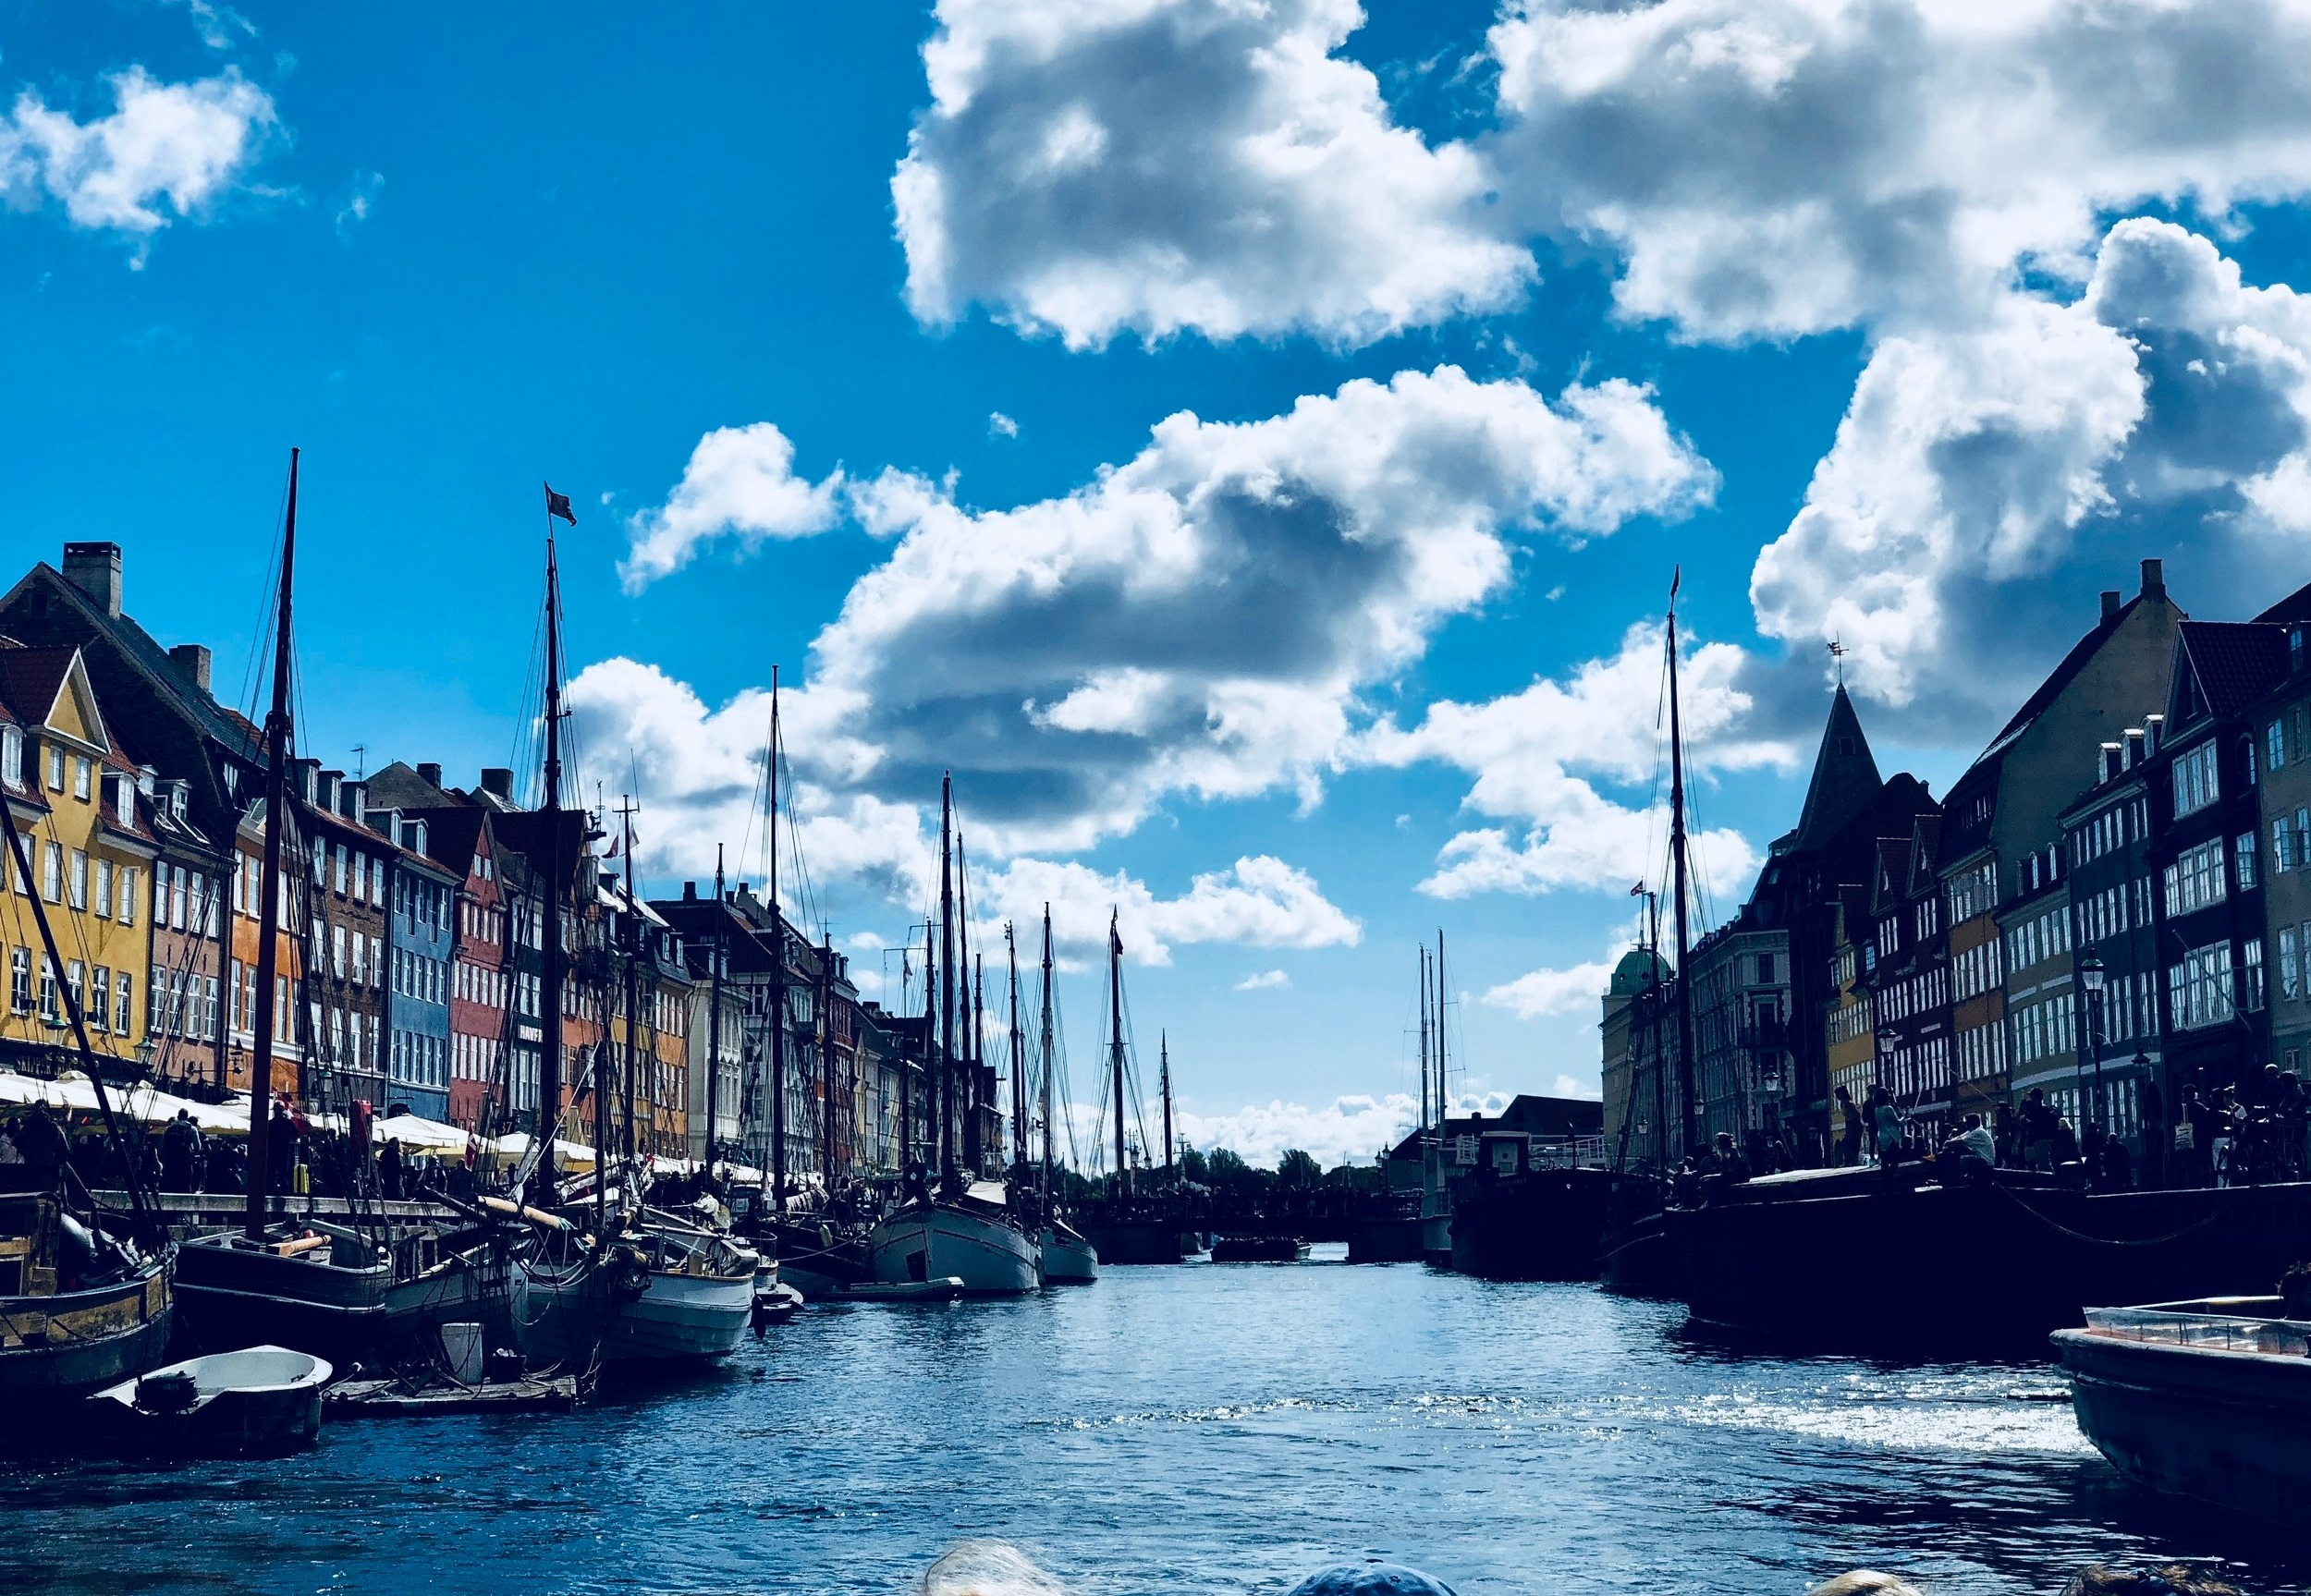 Nyhavn, Copenhagen - Nyhavn, built from 1670 to 1673, was commissioned by King Christian V and used as an international shipping port. Today, this picturesque spot is as popular with the locals as it is with tourists. Come, grab a beer, and enjoy the sunset!Photo by Miriam Bourin/Global Local Traveler